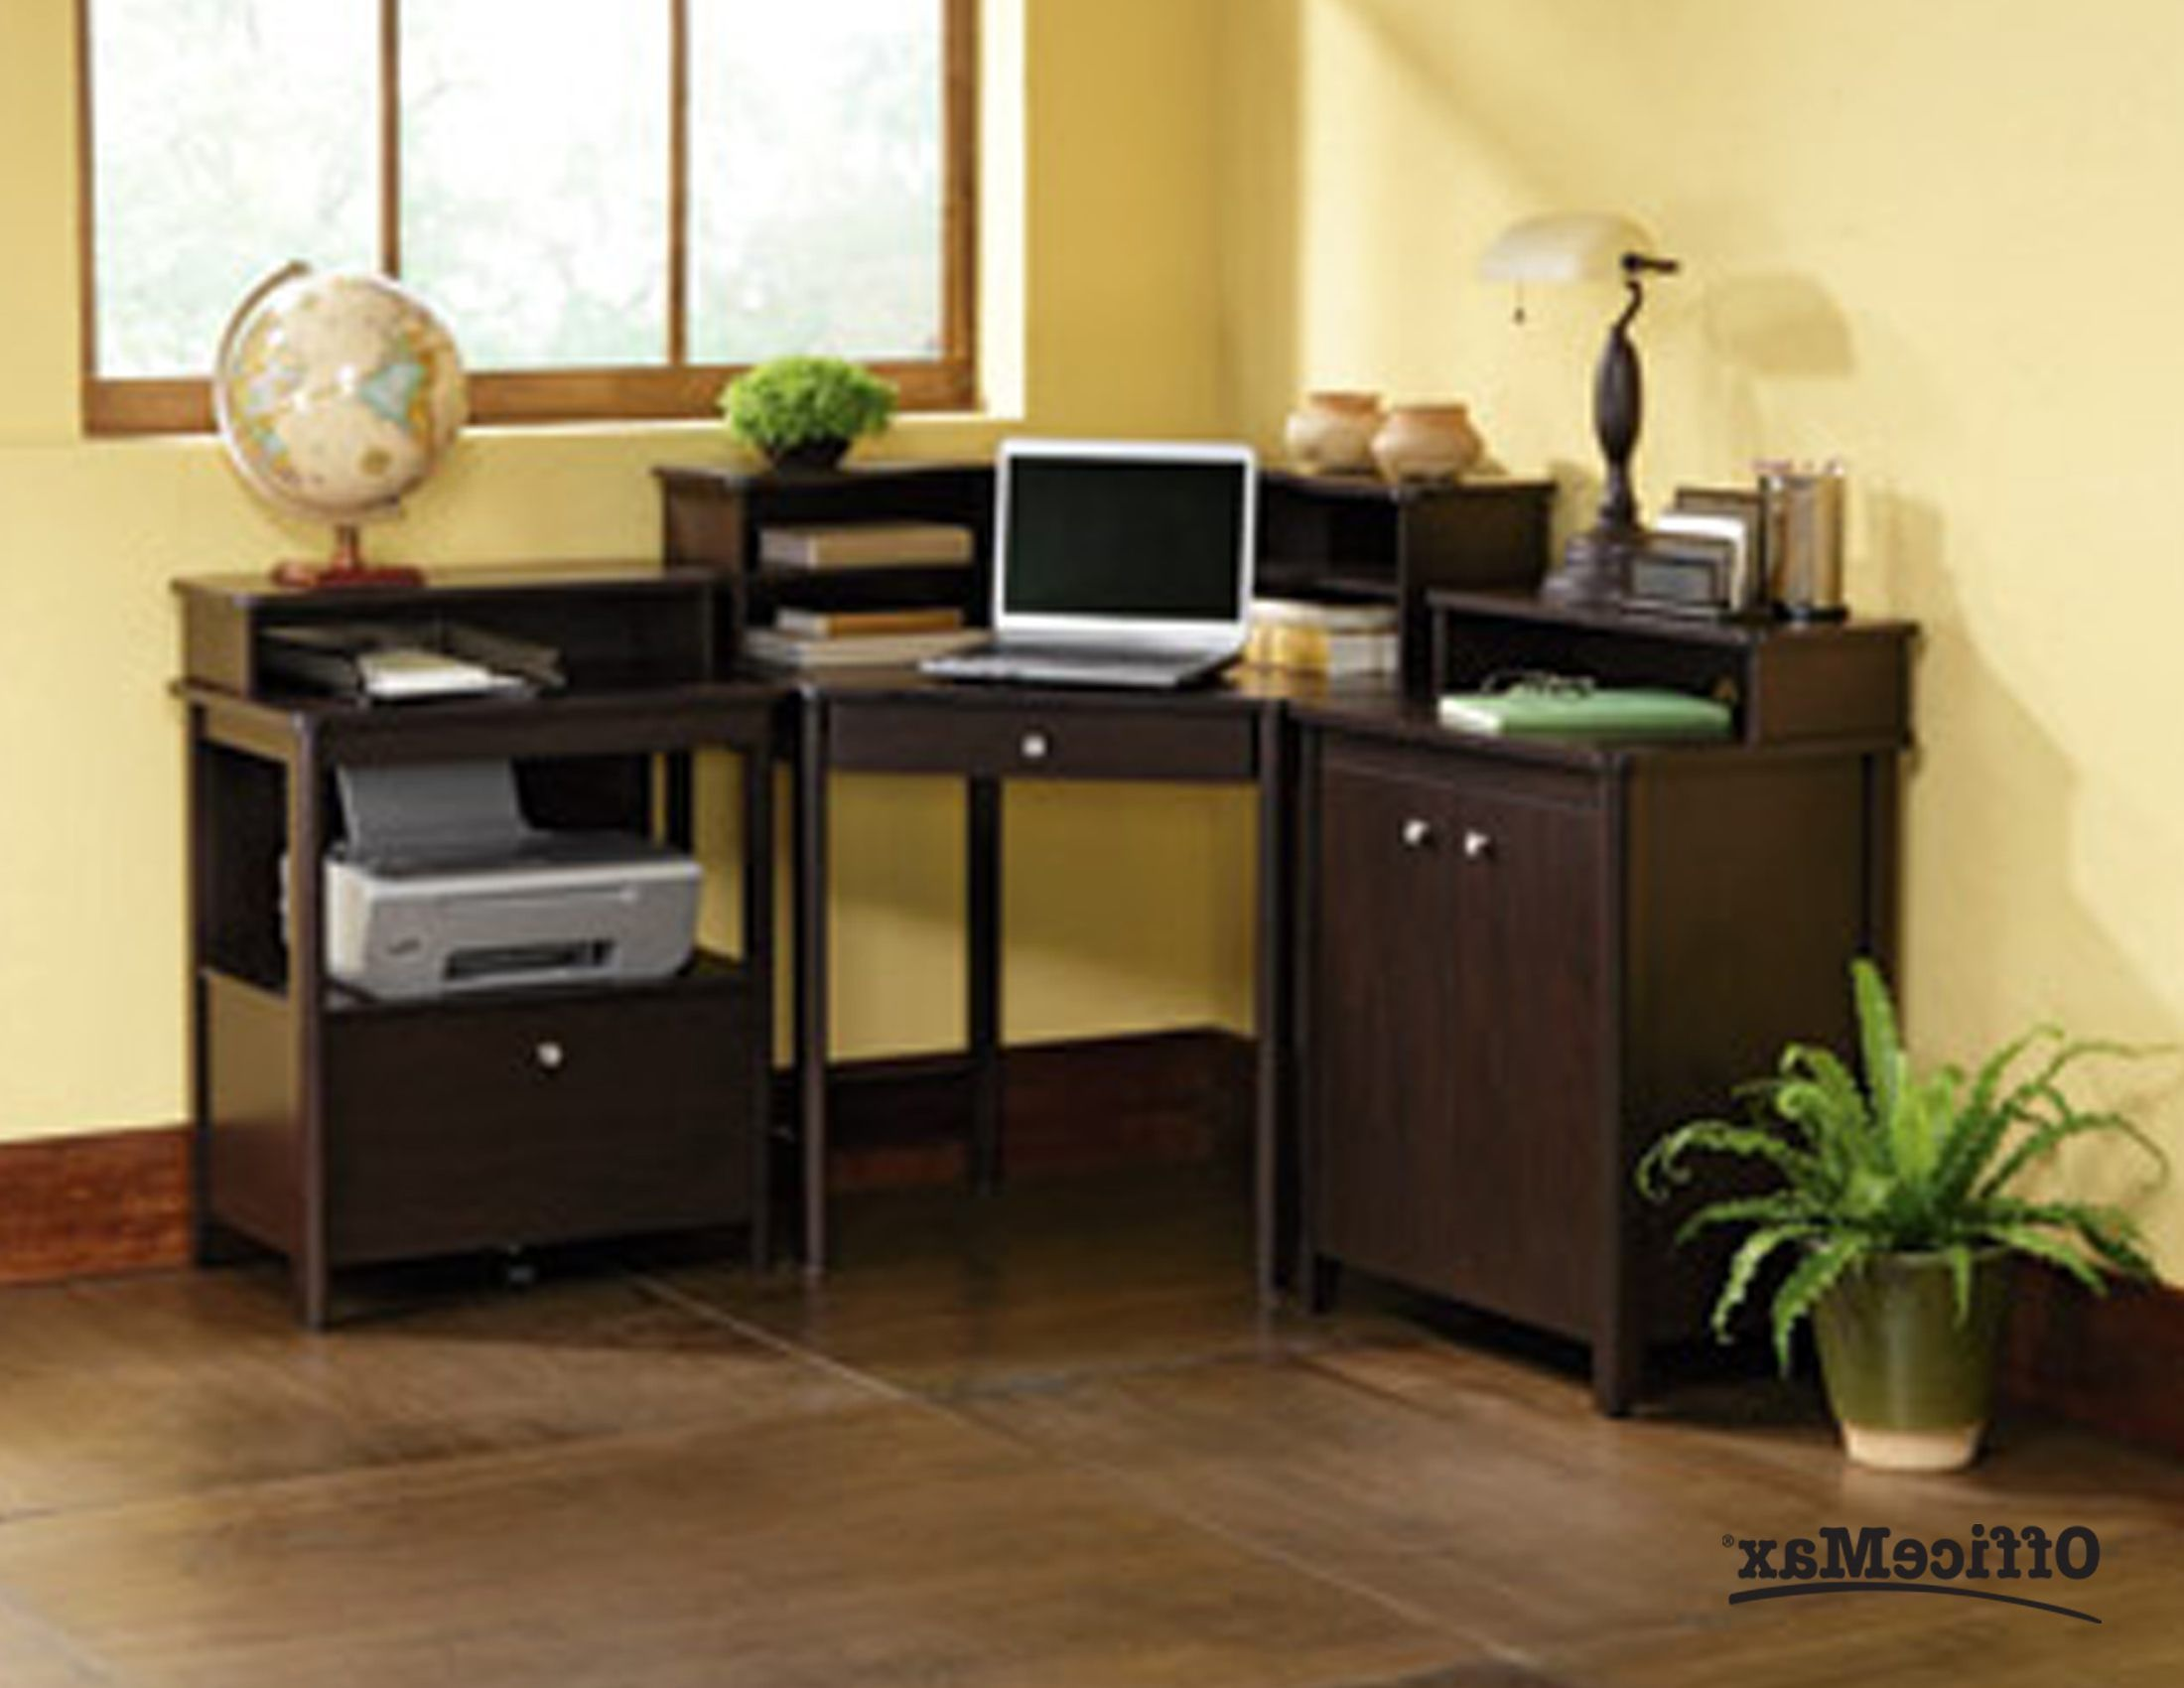 spaces computer desks custom narrow room ideas desk design most wonderful bedroom office for small living in